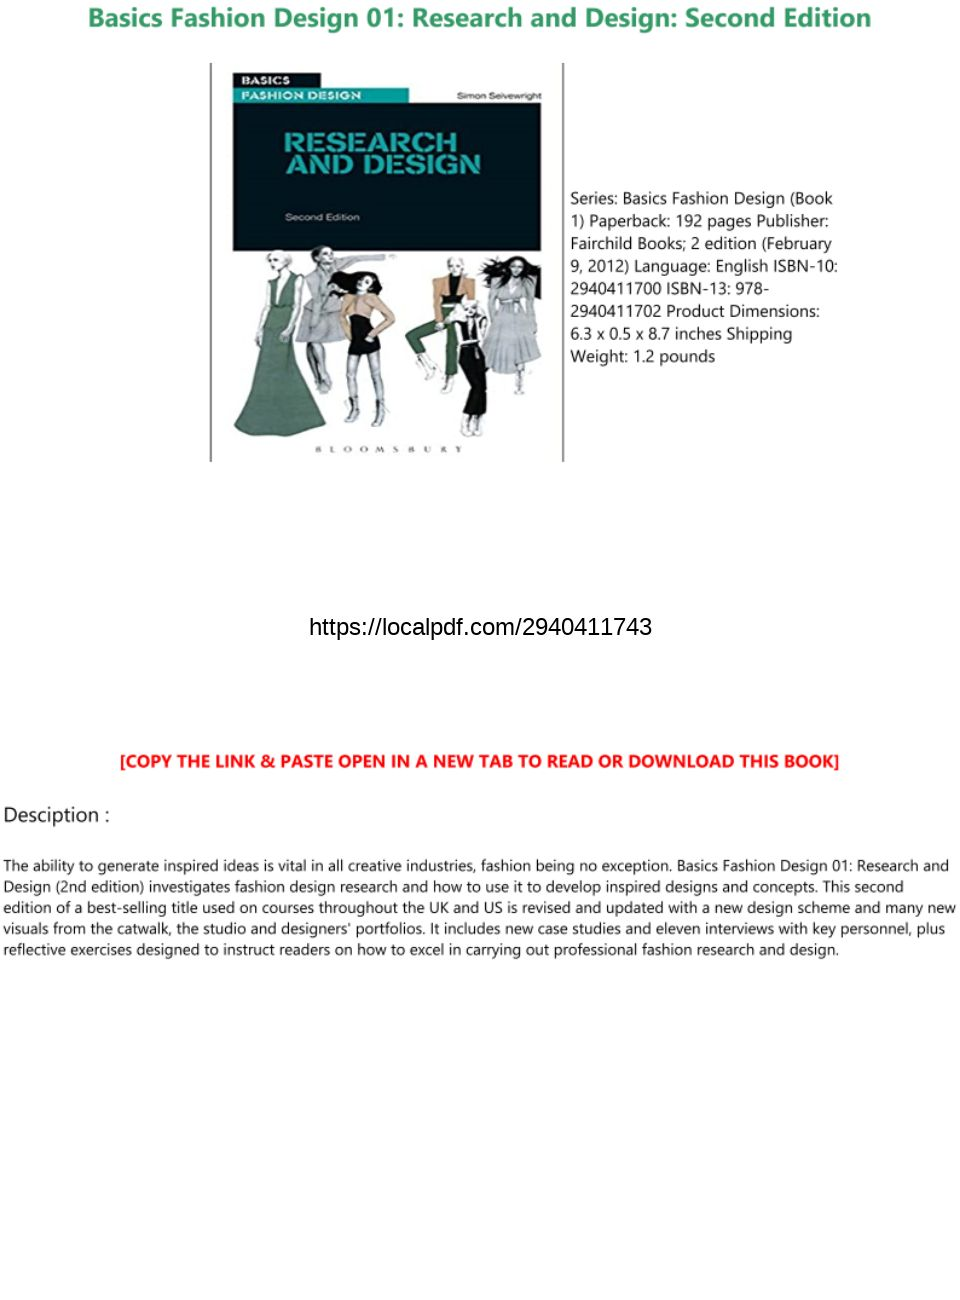 Pdf Download Basics Fashion Design 01 Research And Design Second Edition Full Books Text Images Music Video Glogster Edu Interactive Multimedia Posters